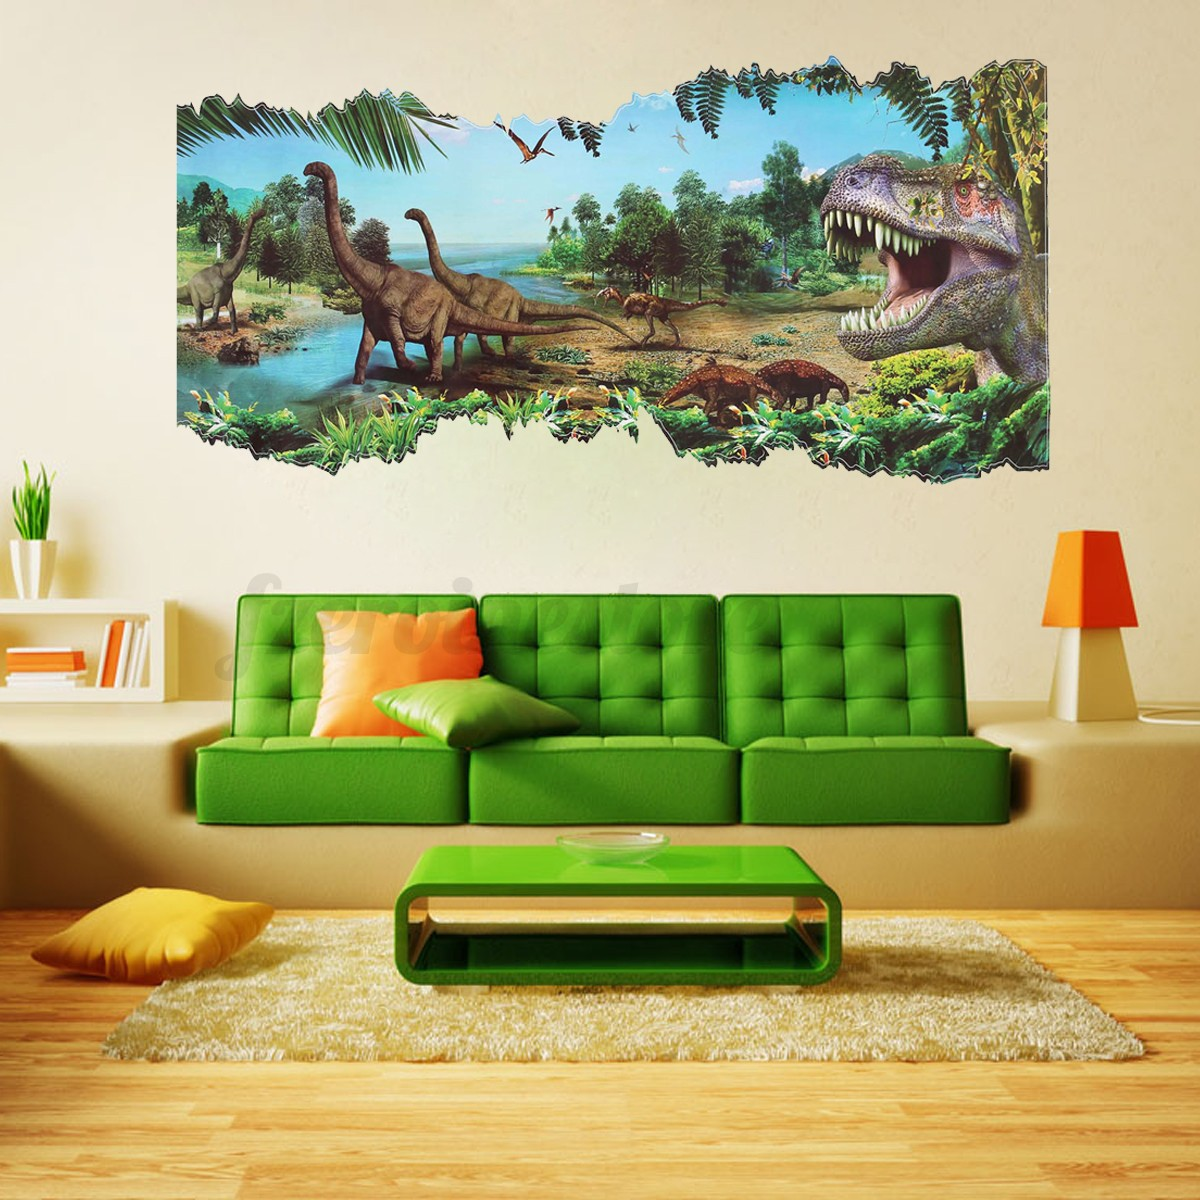 Image Is Loading 3D Jurassic World Park Dinosaur Wall Sticker Kids  Part 50